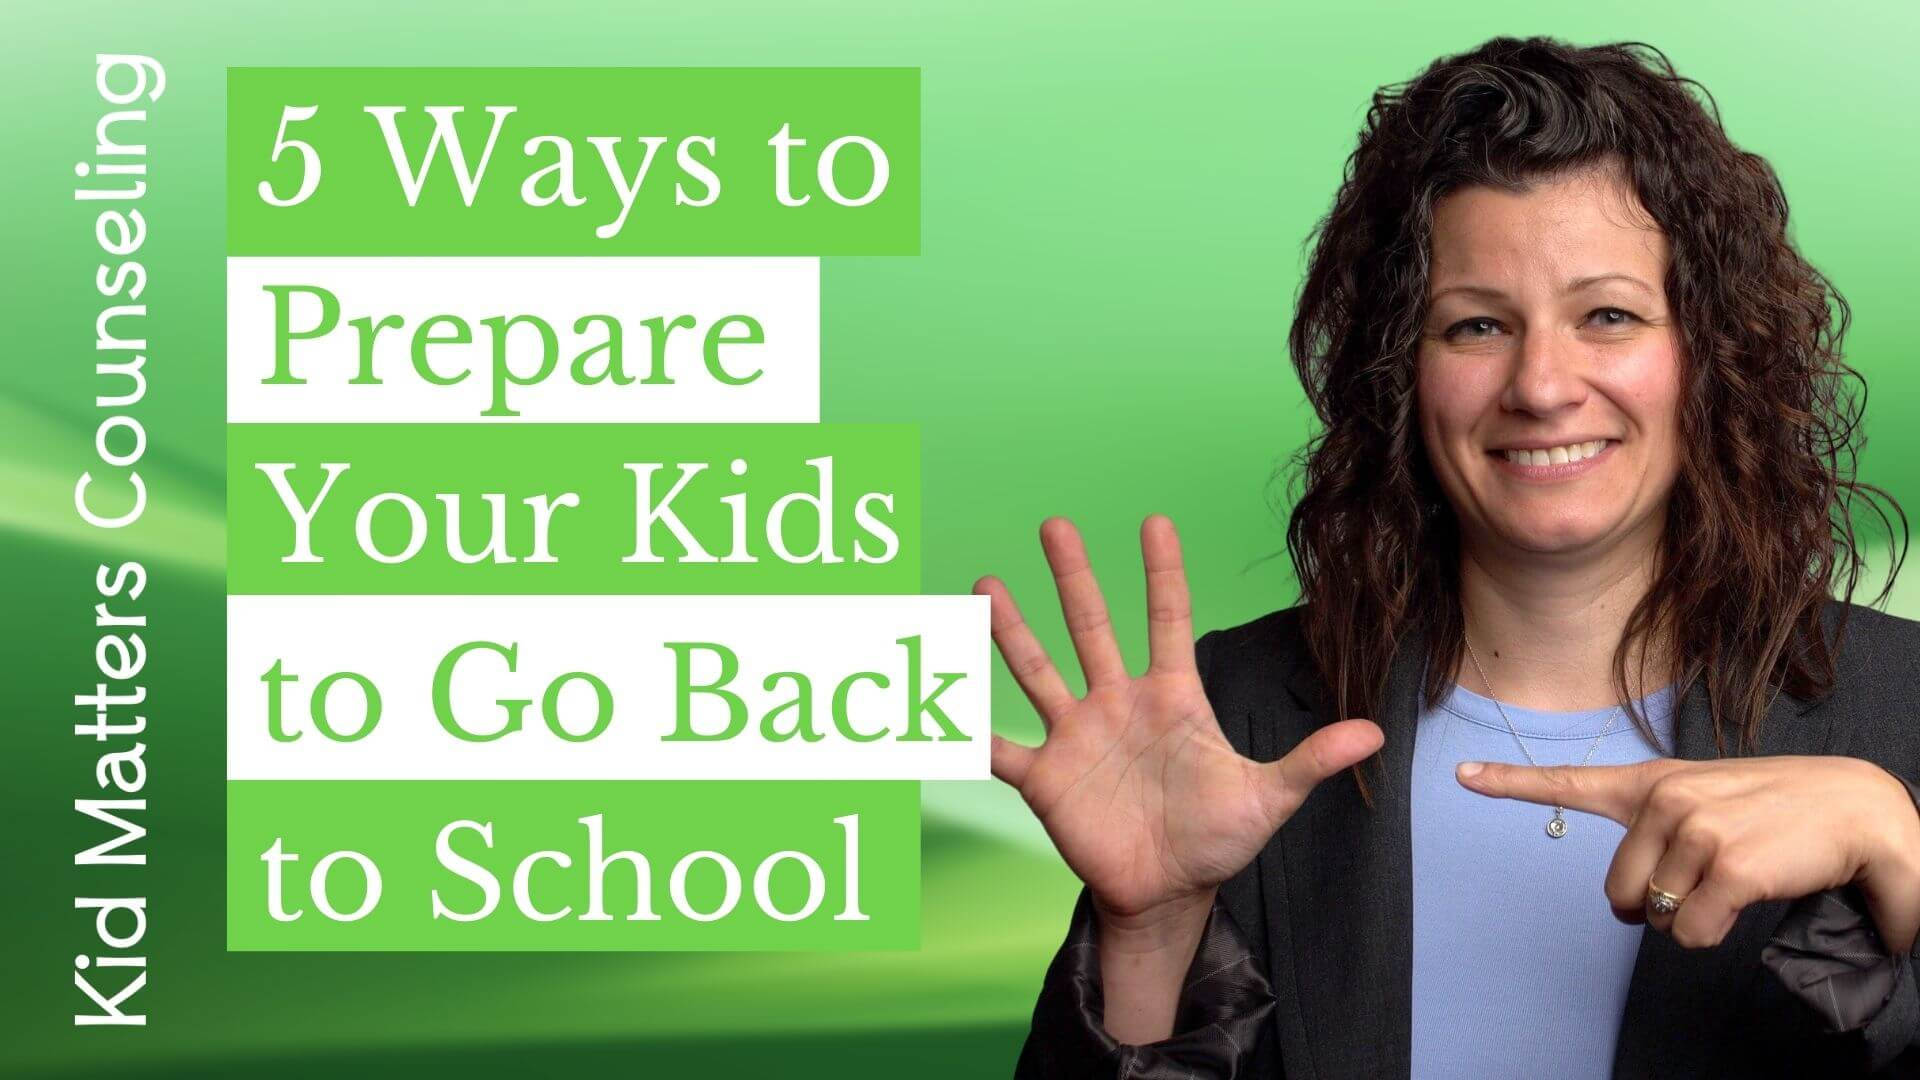 5 Ways to Prepare Your Kids to Go Back to School